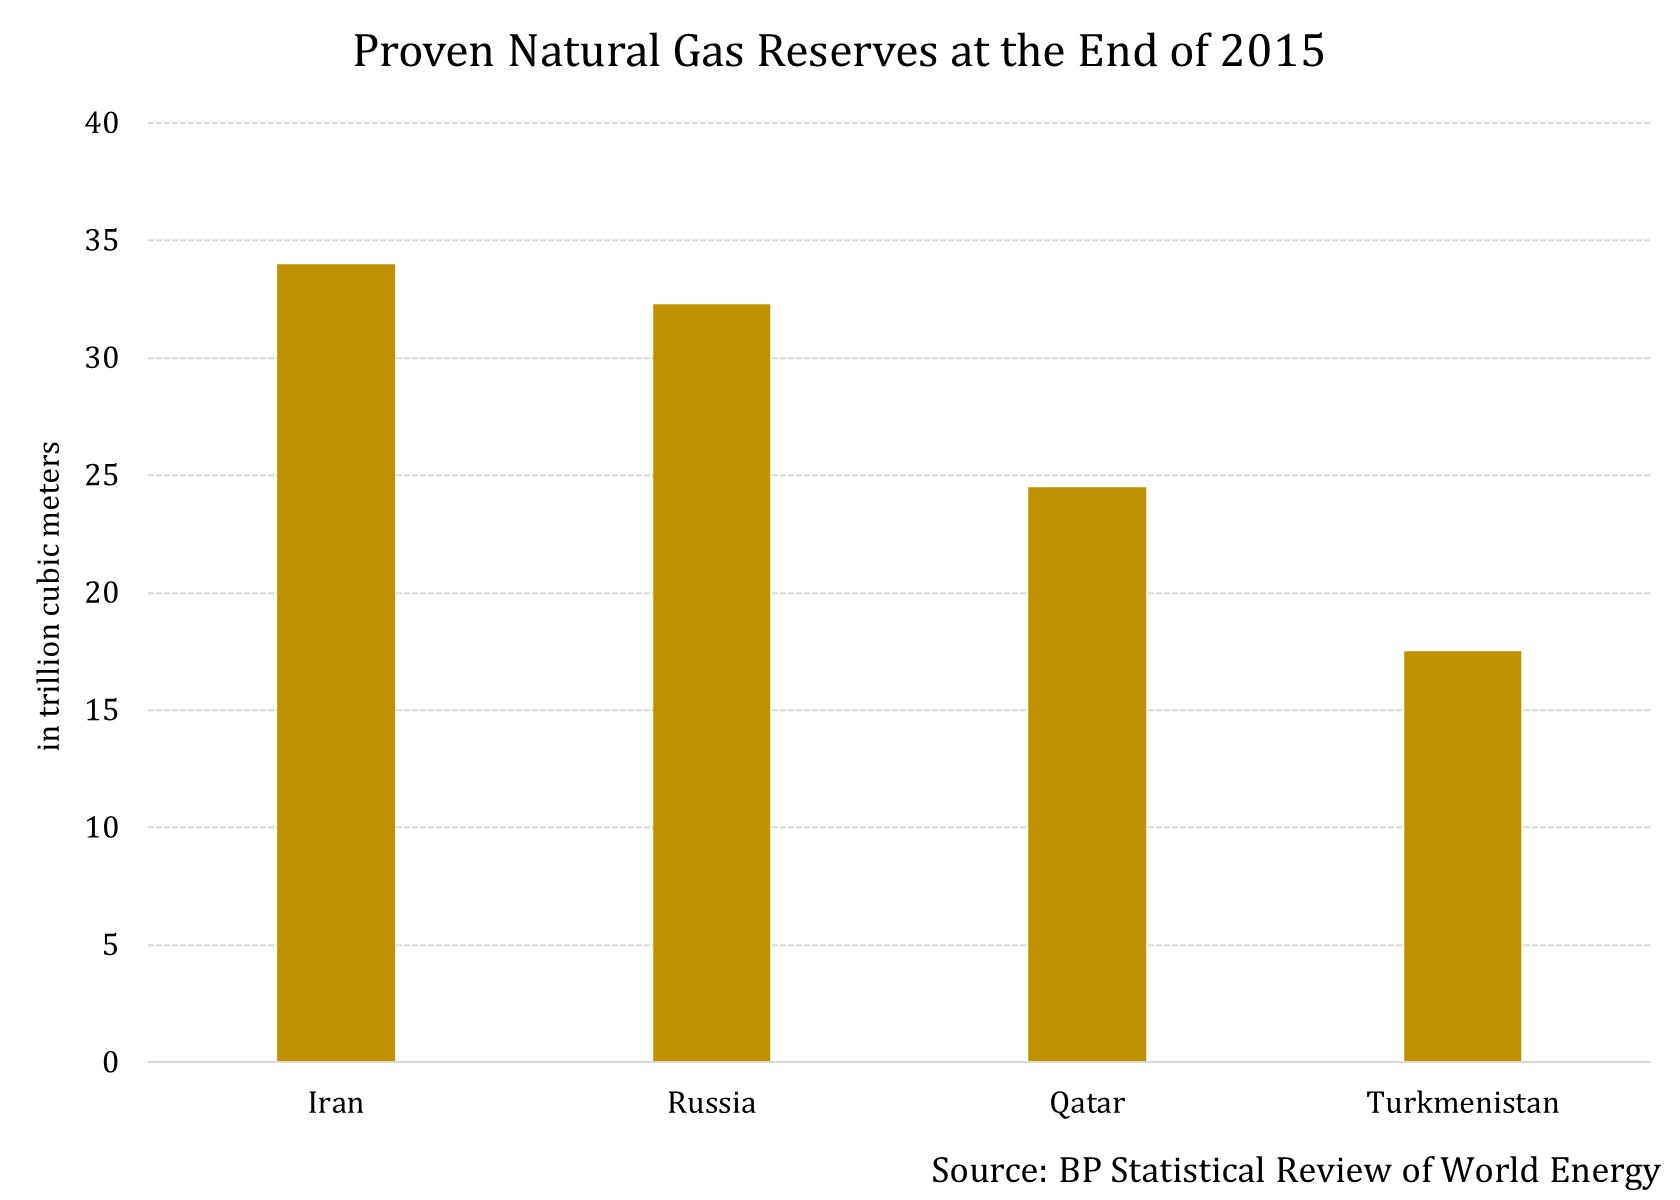 Largest Natural Gas Reserves Countries